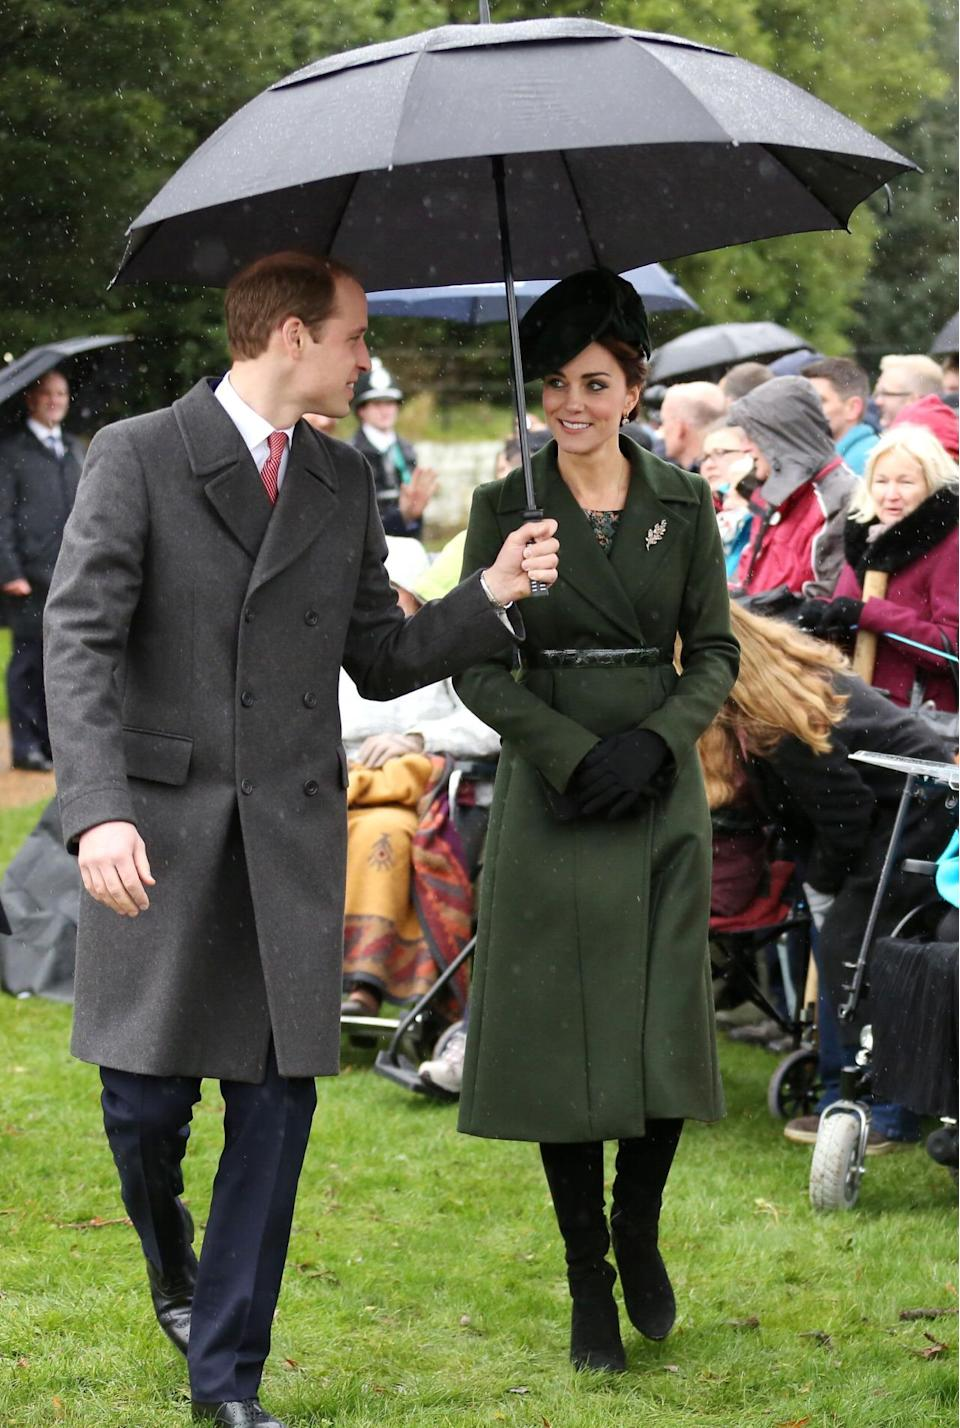 <p>For the Christmas Day service in Norfolk, Kate donned a dark green coat by Sportmax and matching elegant hat. Her suede heeled boots were by Aquatalia and her black clutch by Mulberry.</p><p><i>[Photo: PA]</i></p>